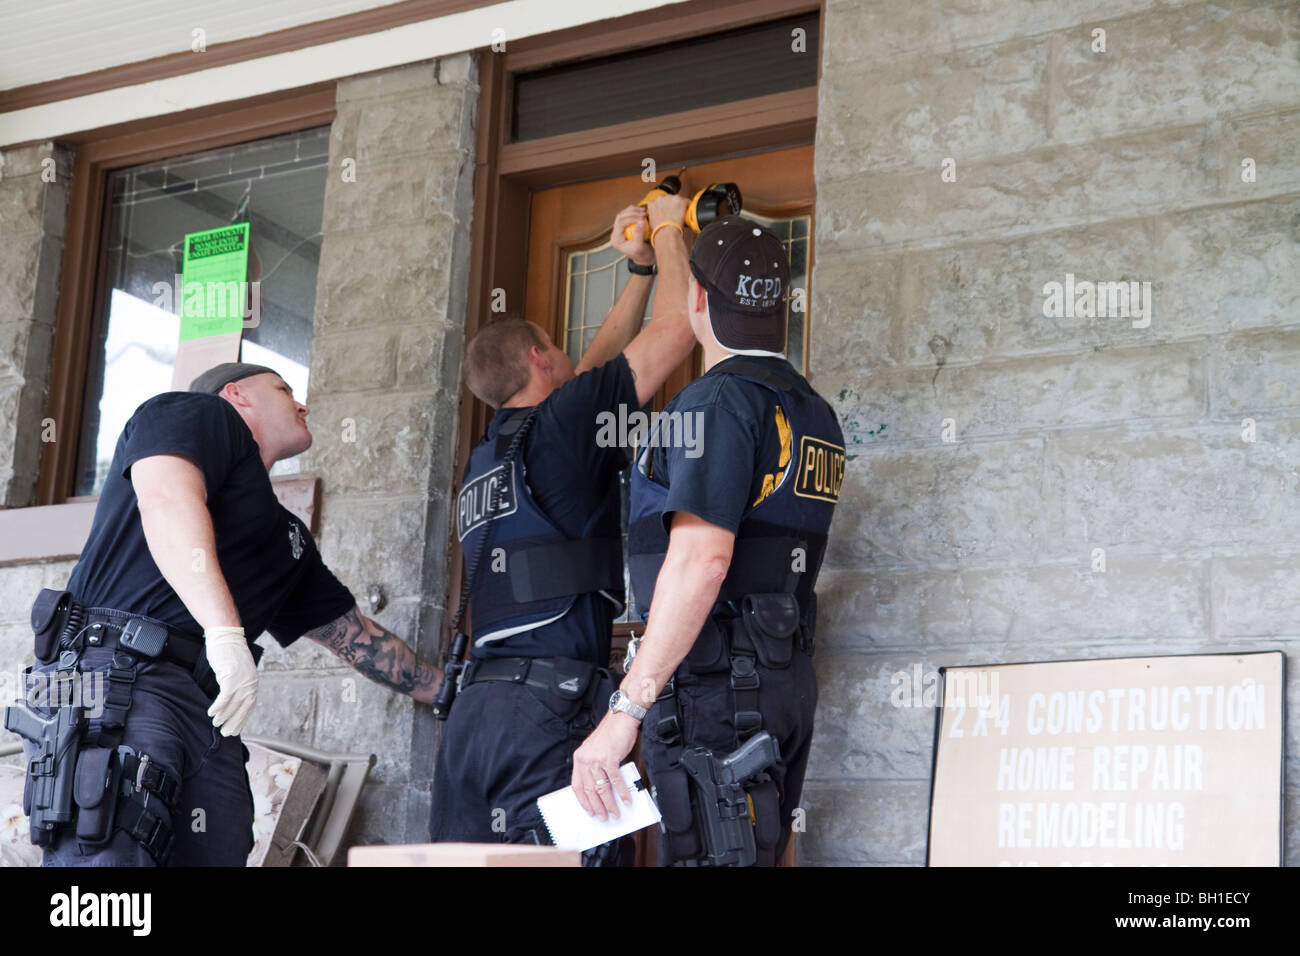 Search Warrant Stock Photos & Search Warrant Stock Images